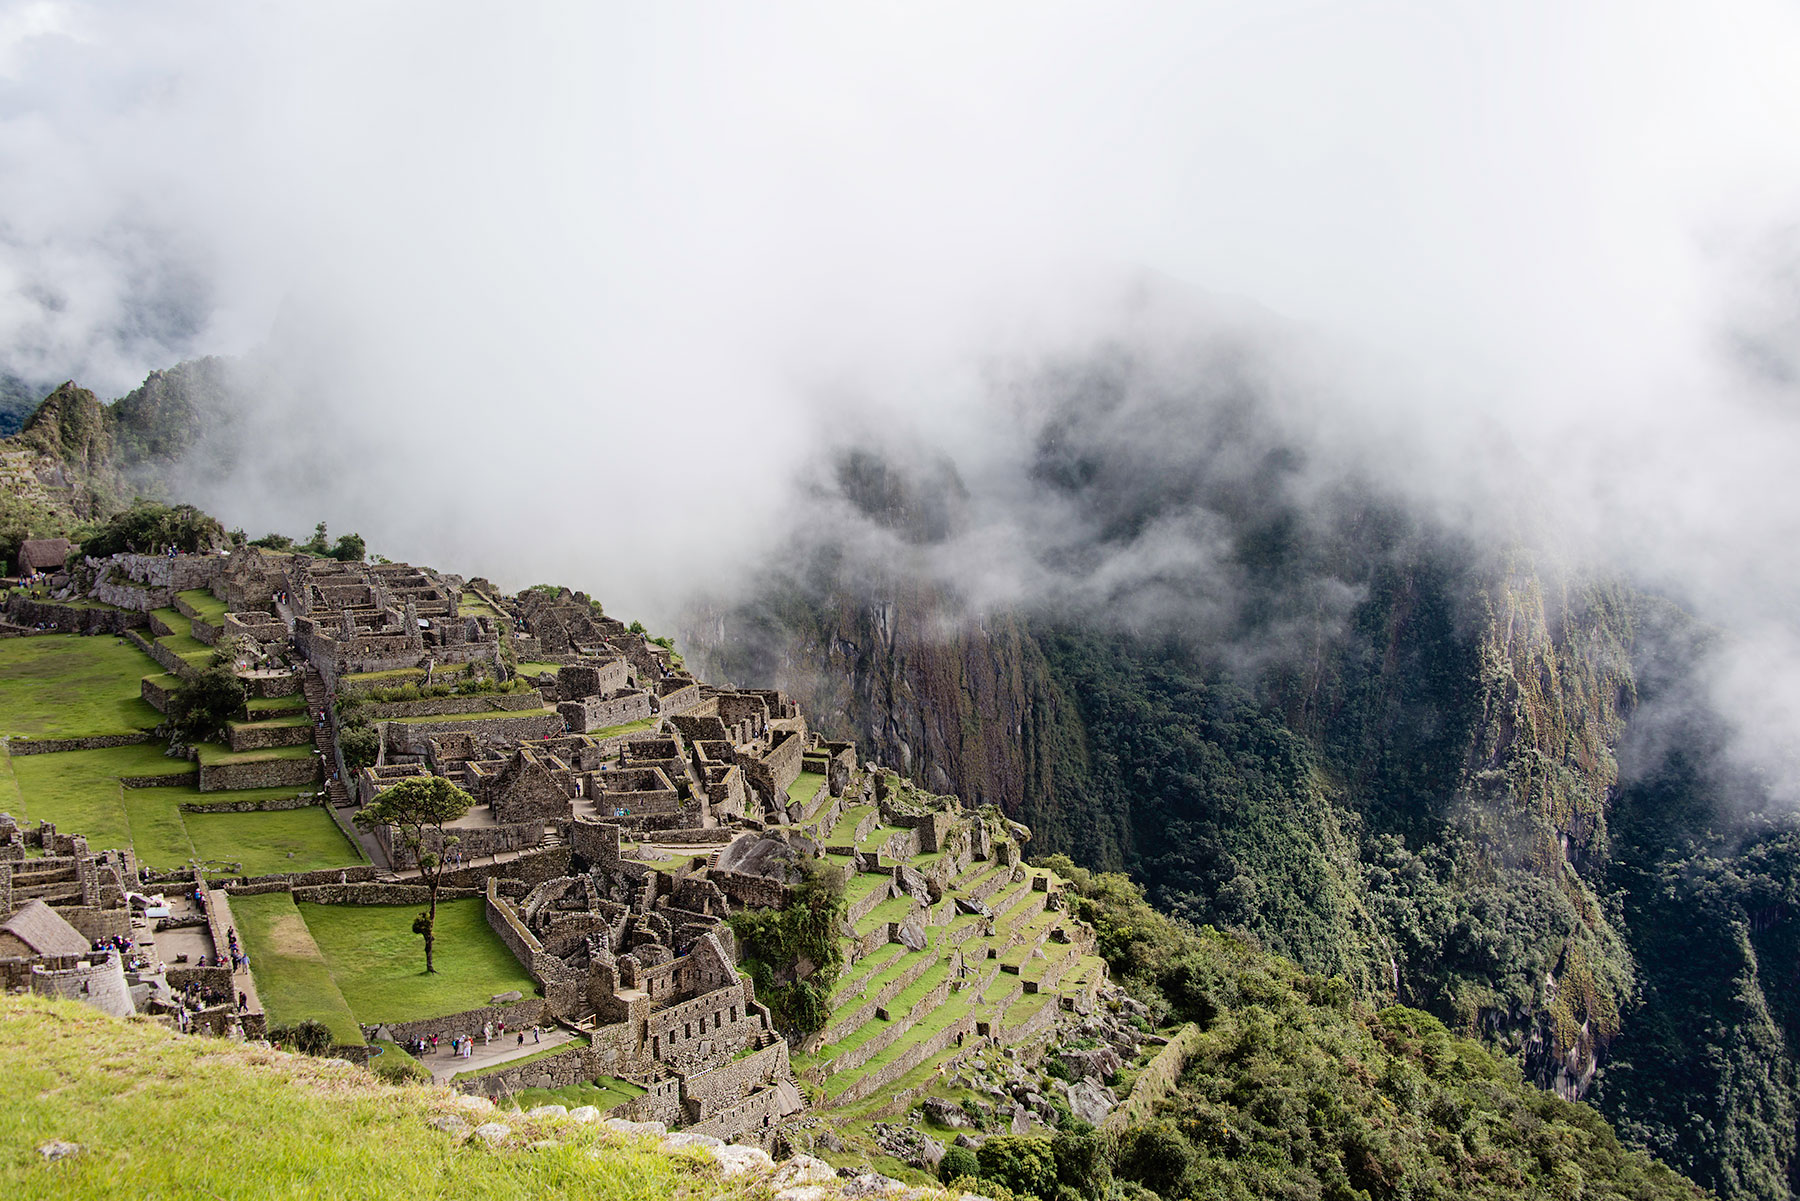 Overview of Machu Picchu city in the clouds